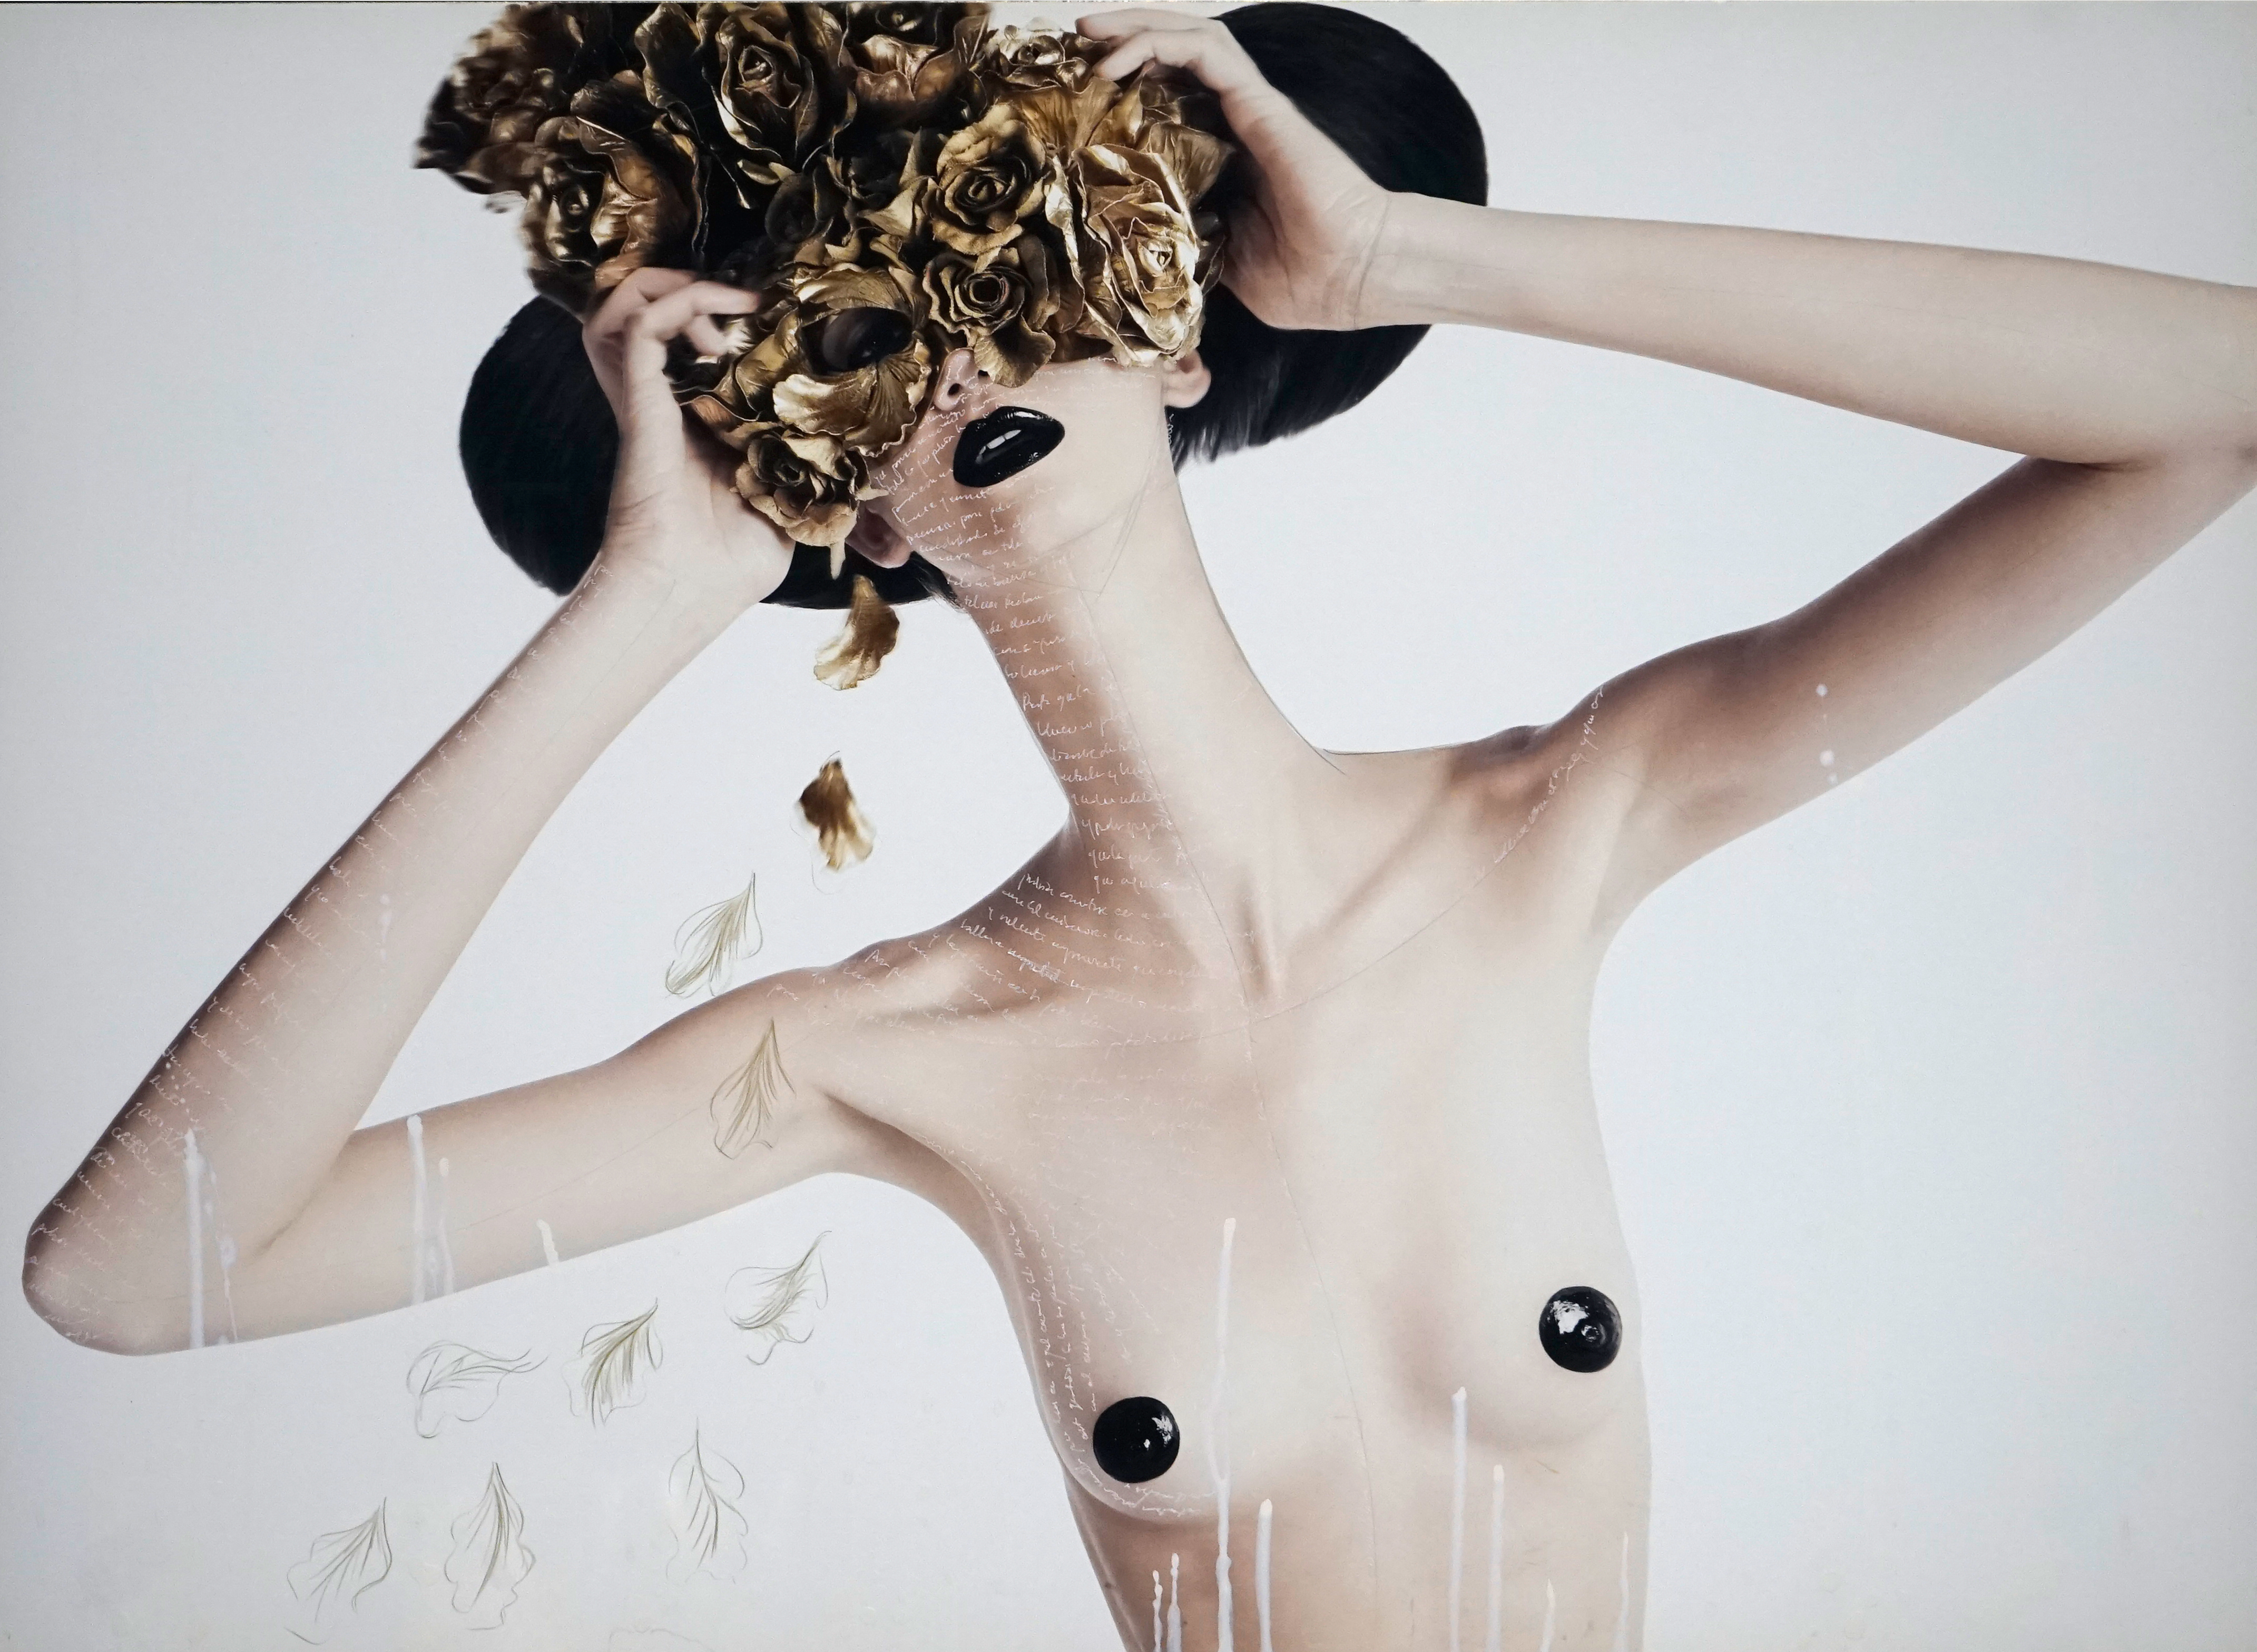 Teresa with Mask of Roses, 2009